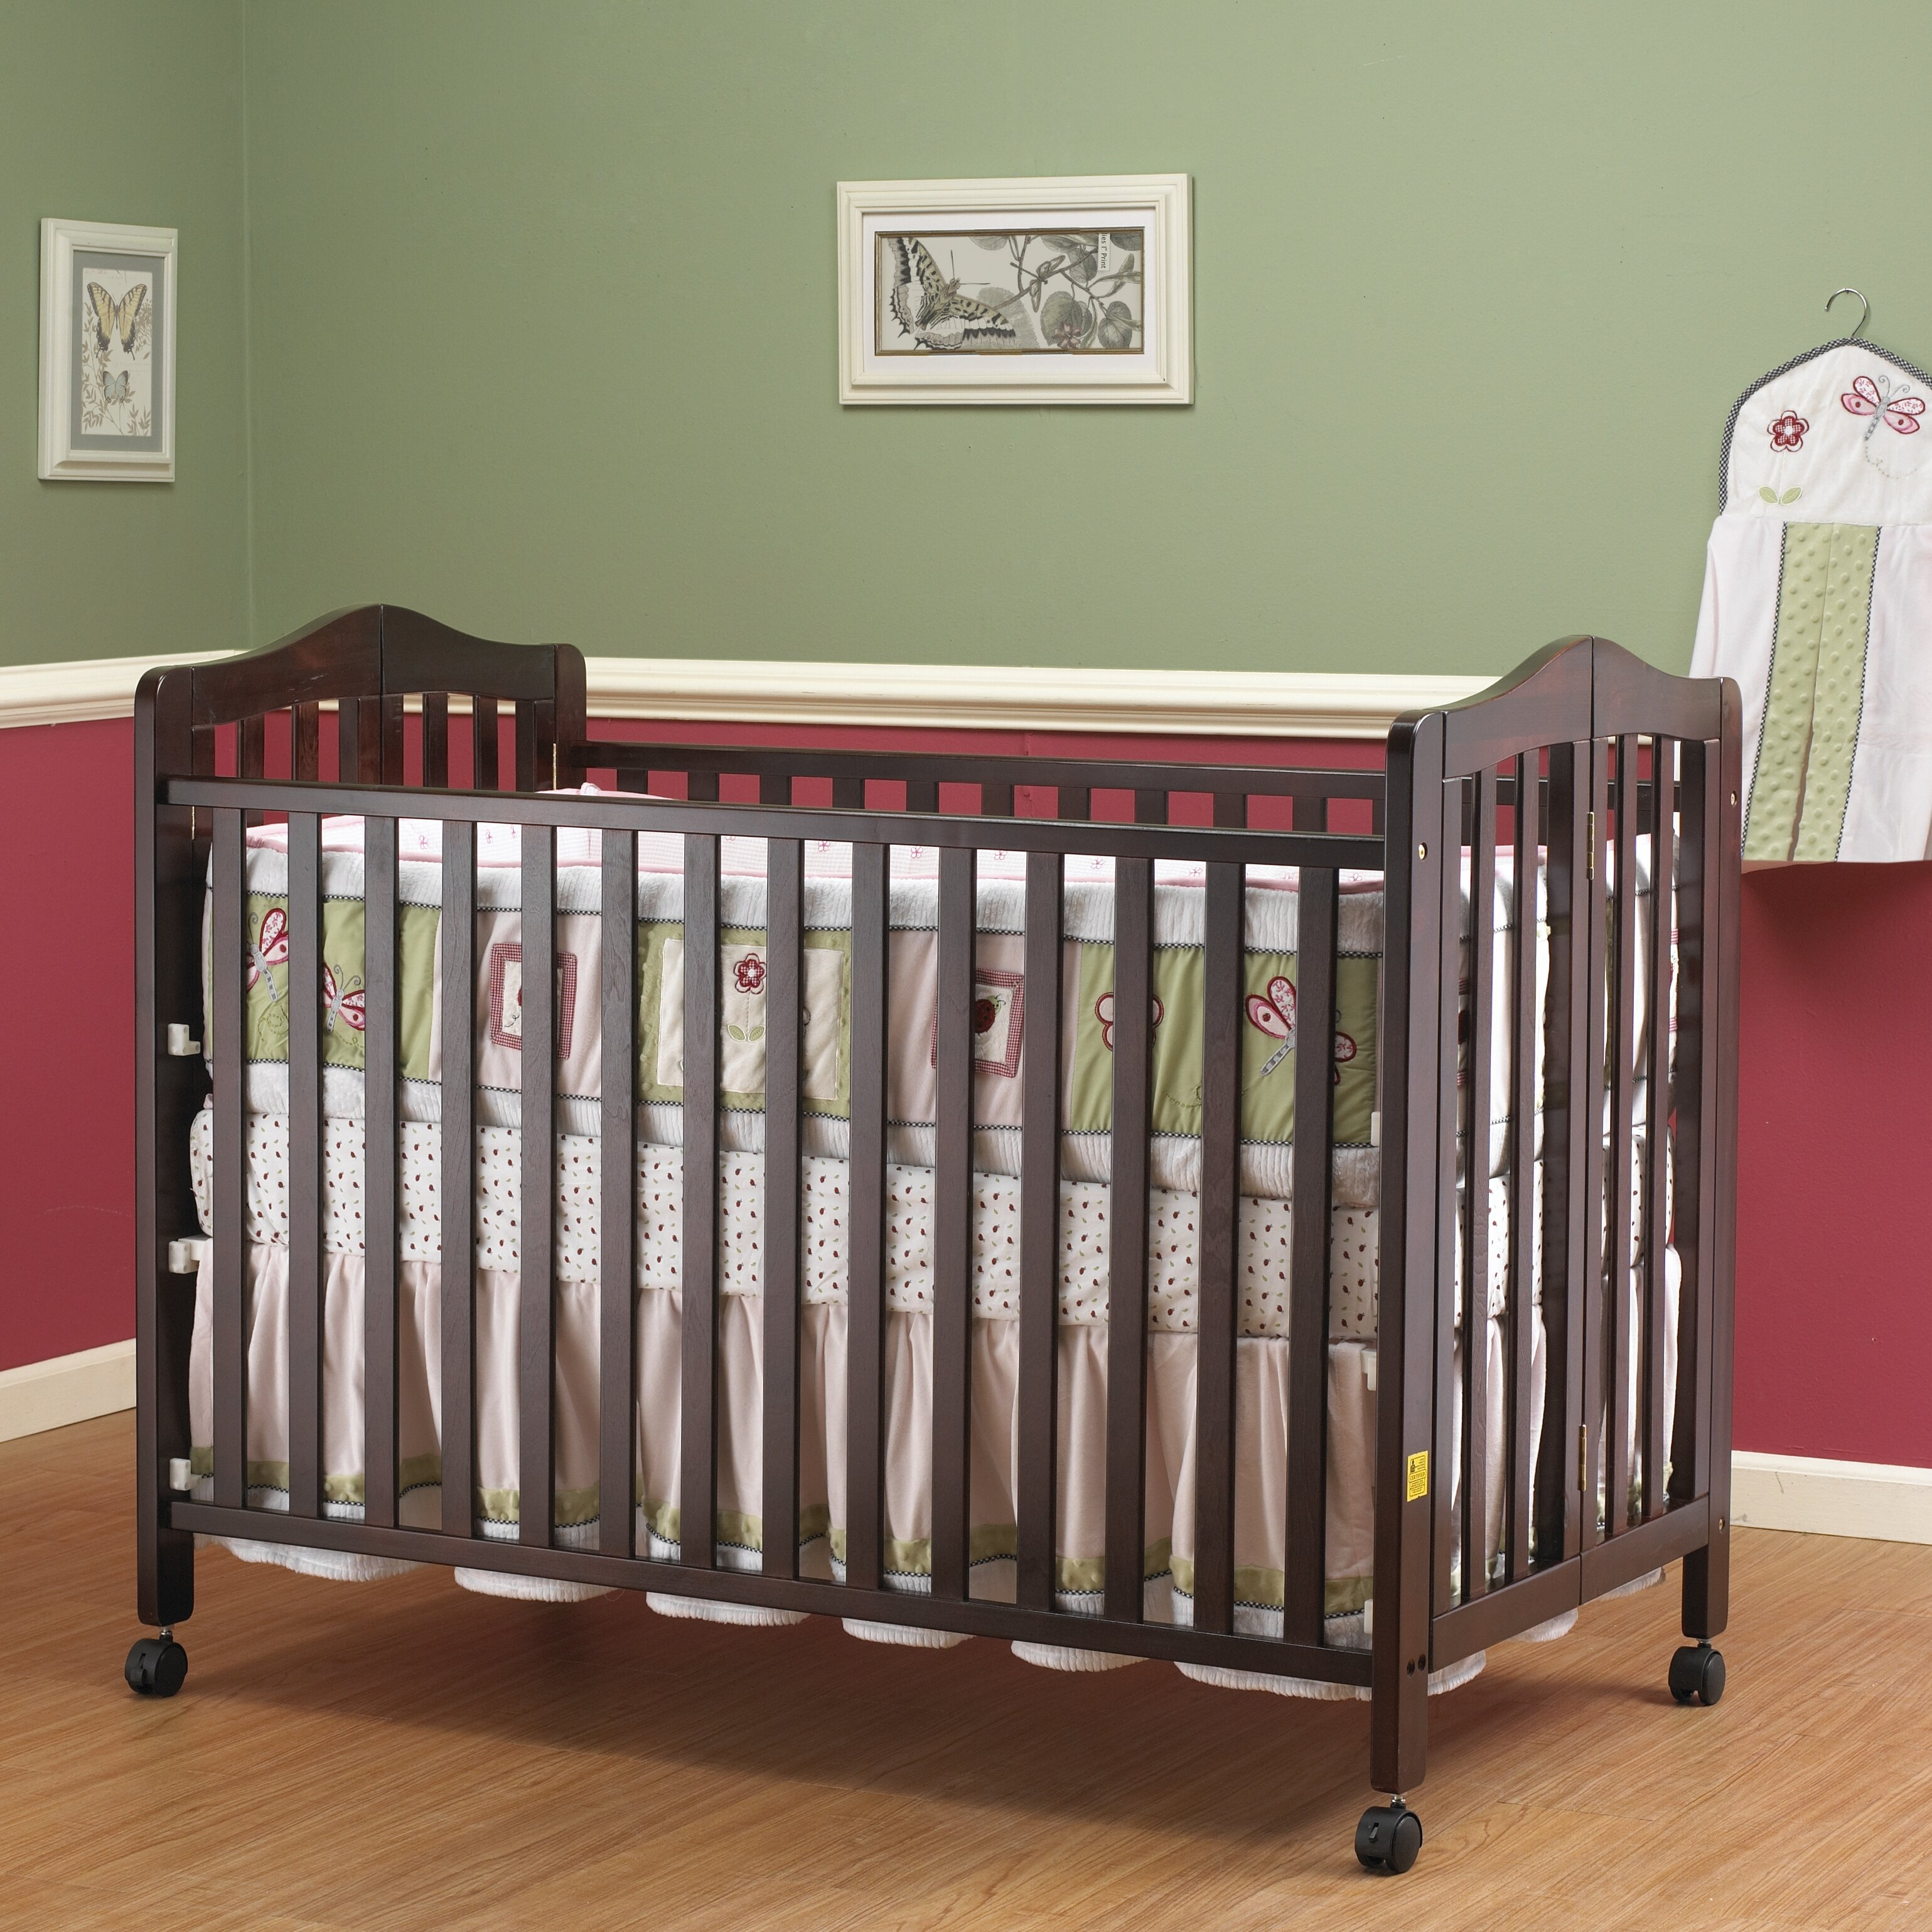 Evacuation crib for sale - Orbelle Trading Lisa Two Level Full Size Folding Convertible Crib